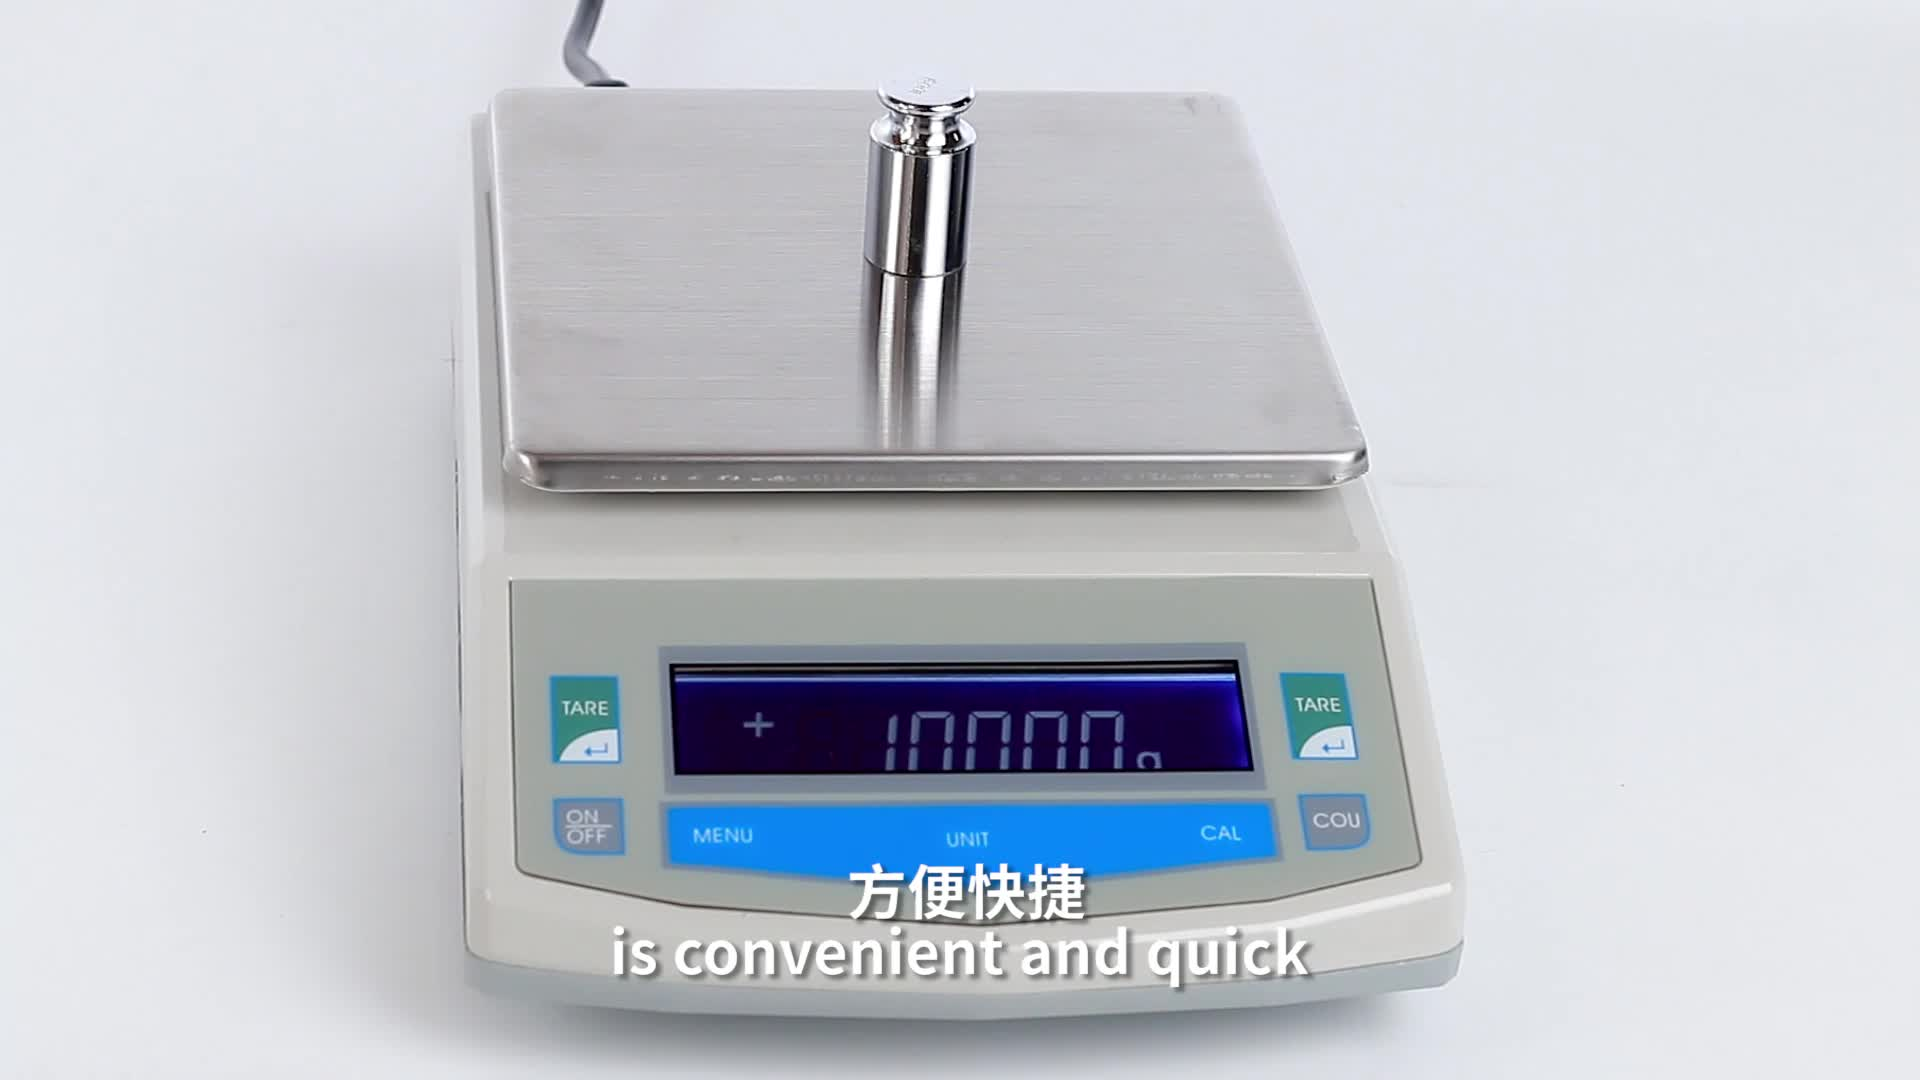 0 01g weighing scale market precision balance kitchen scale for sale4000g